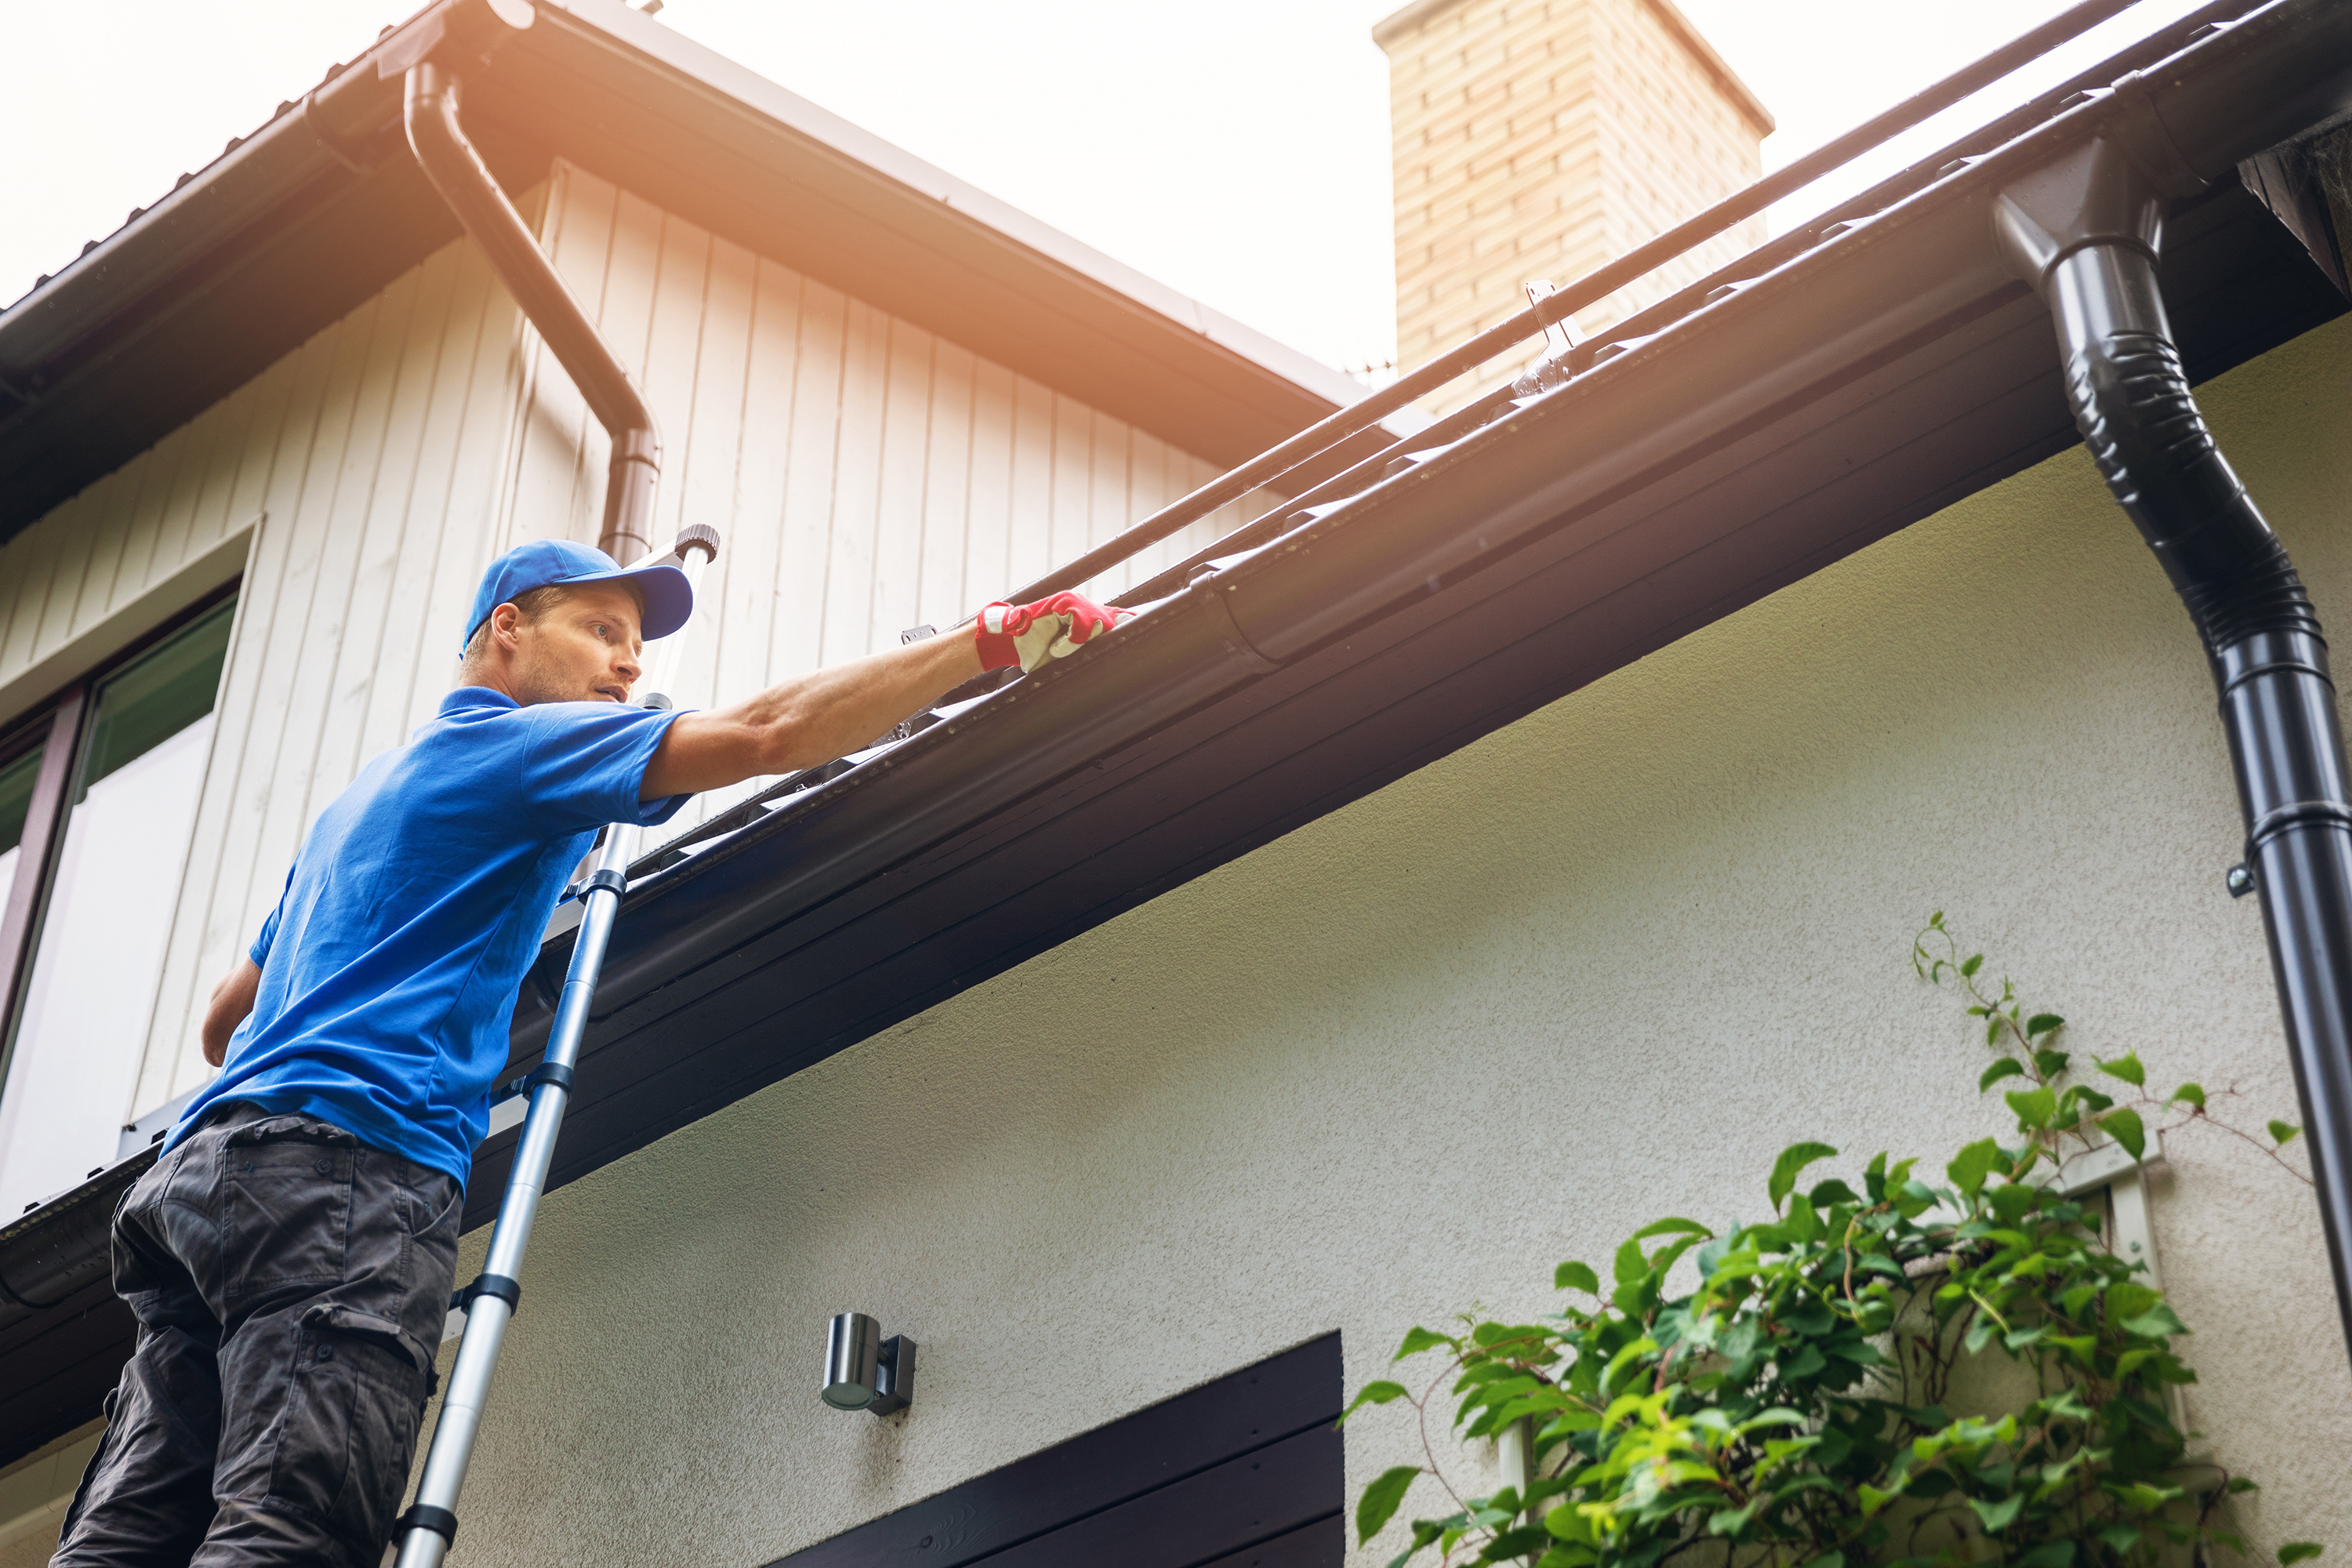 Cleaning Gutters in South Florida Help Avoid High Costs from Damages